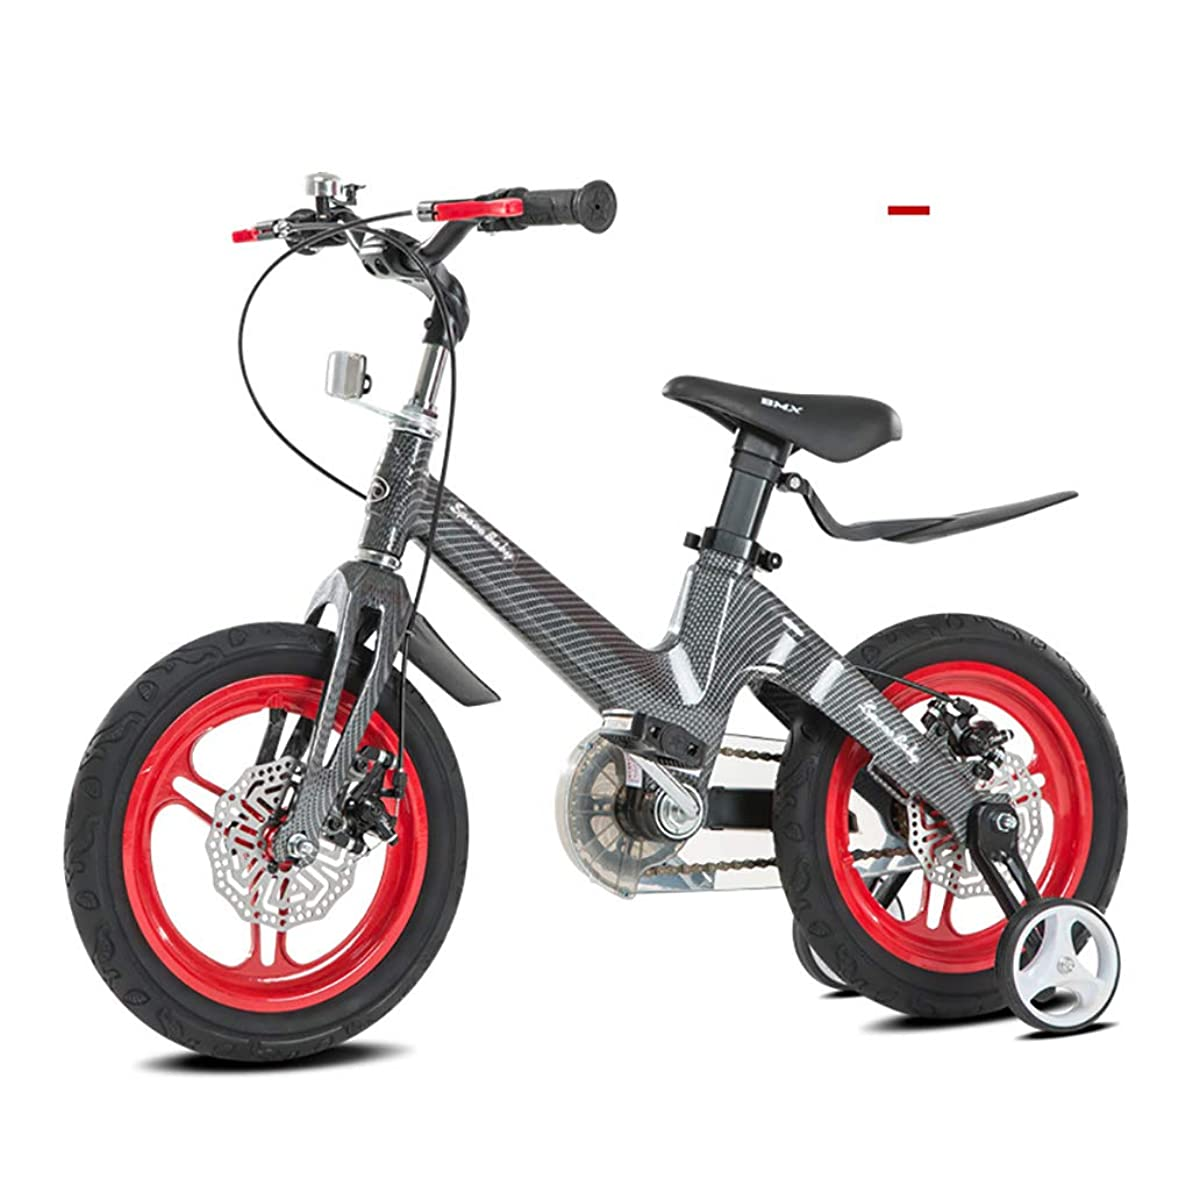 RCIN Sport Kids Bike for 3-8 Years Olds with Training Wheels Disc Brake Easy Assembly Lightweight Magnesium Alloy Frame Adjustable Seat Bicycle for Boy Girl-16 Inches